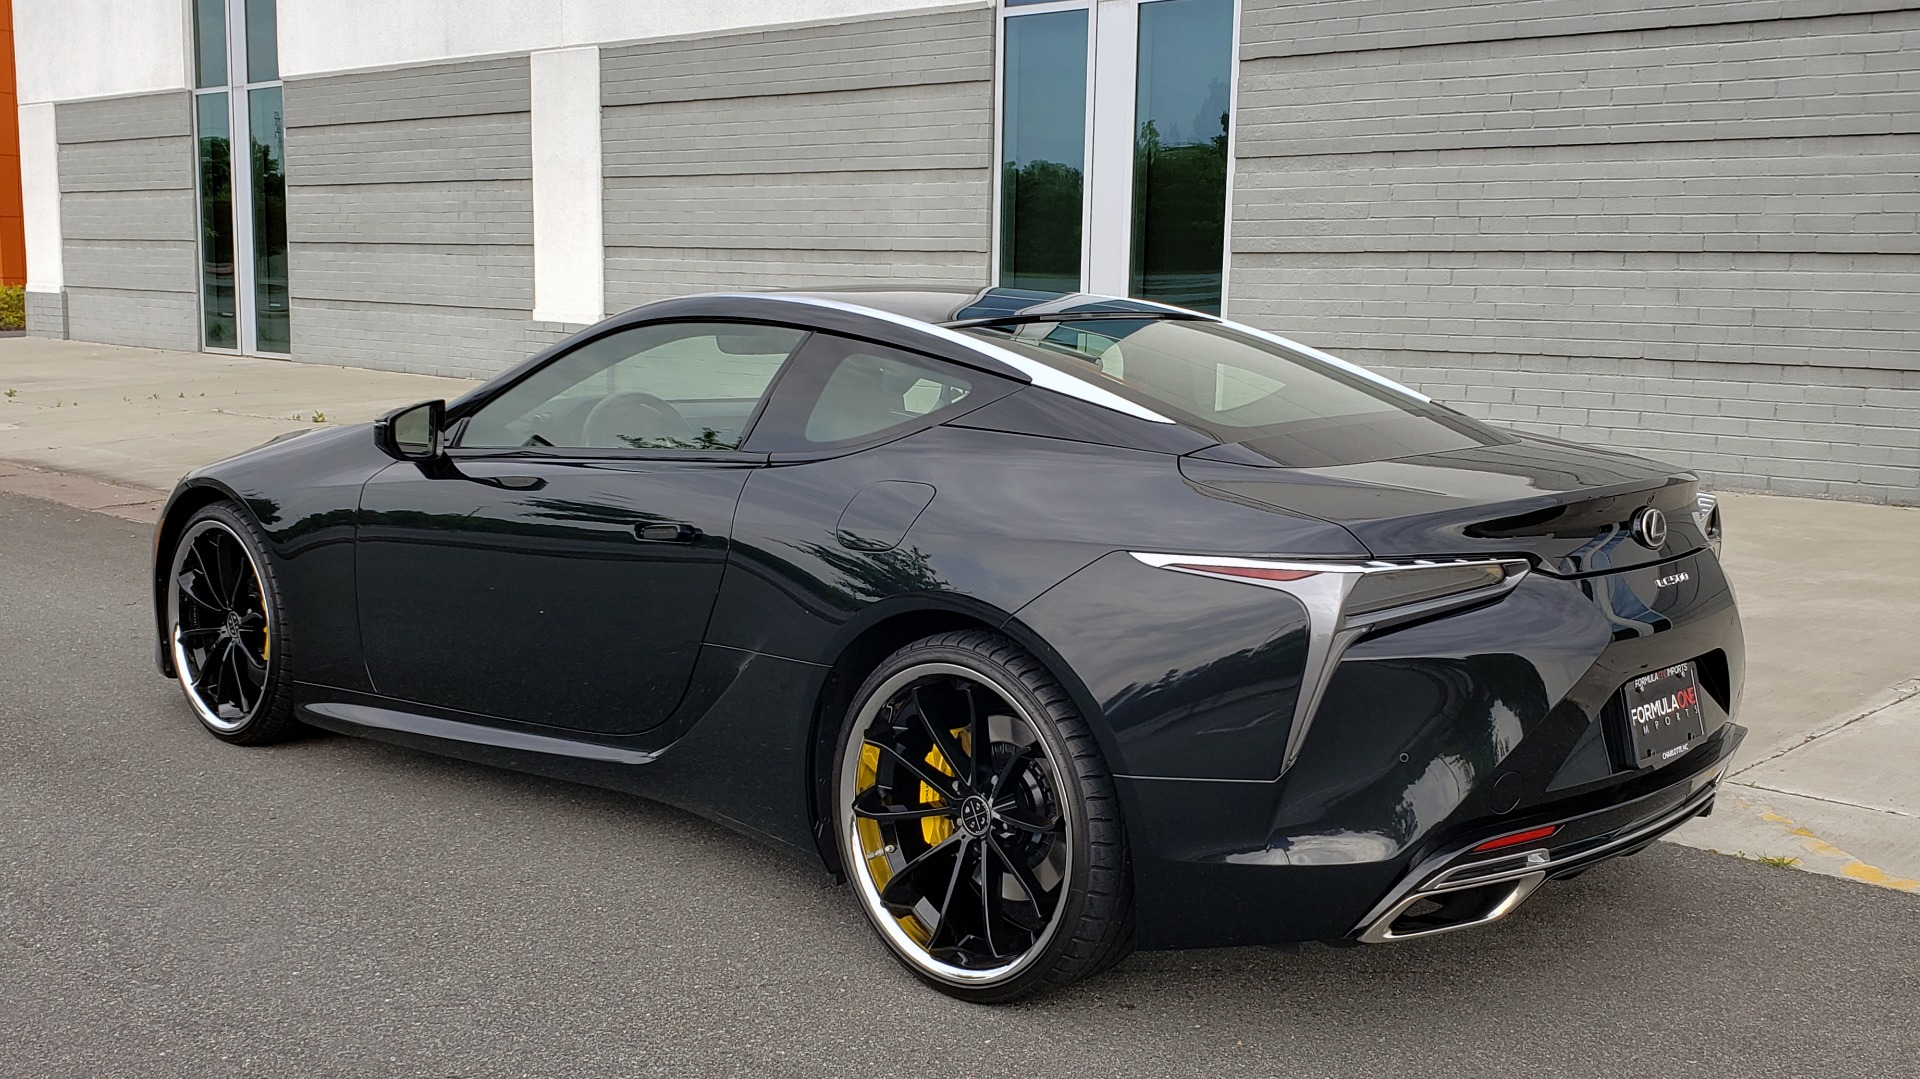 Used 2018 Lexus LC 500 COUPE / 5.0L V8 (471HP) / 10-SPD AUTO / HUD / SUNROOF / REARVIEW for sale Sold at Formula Imports in Charlotte NC 28227 11